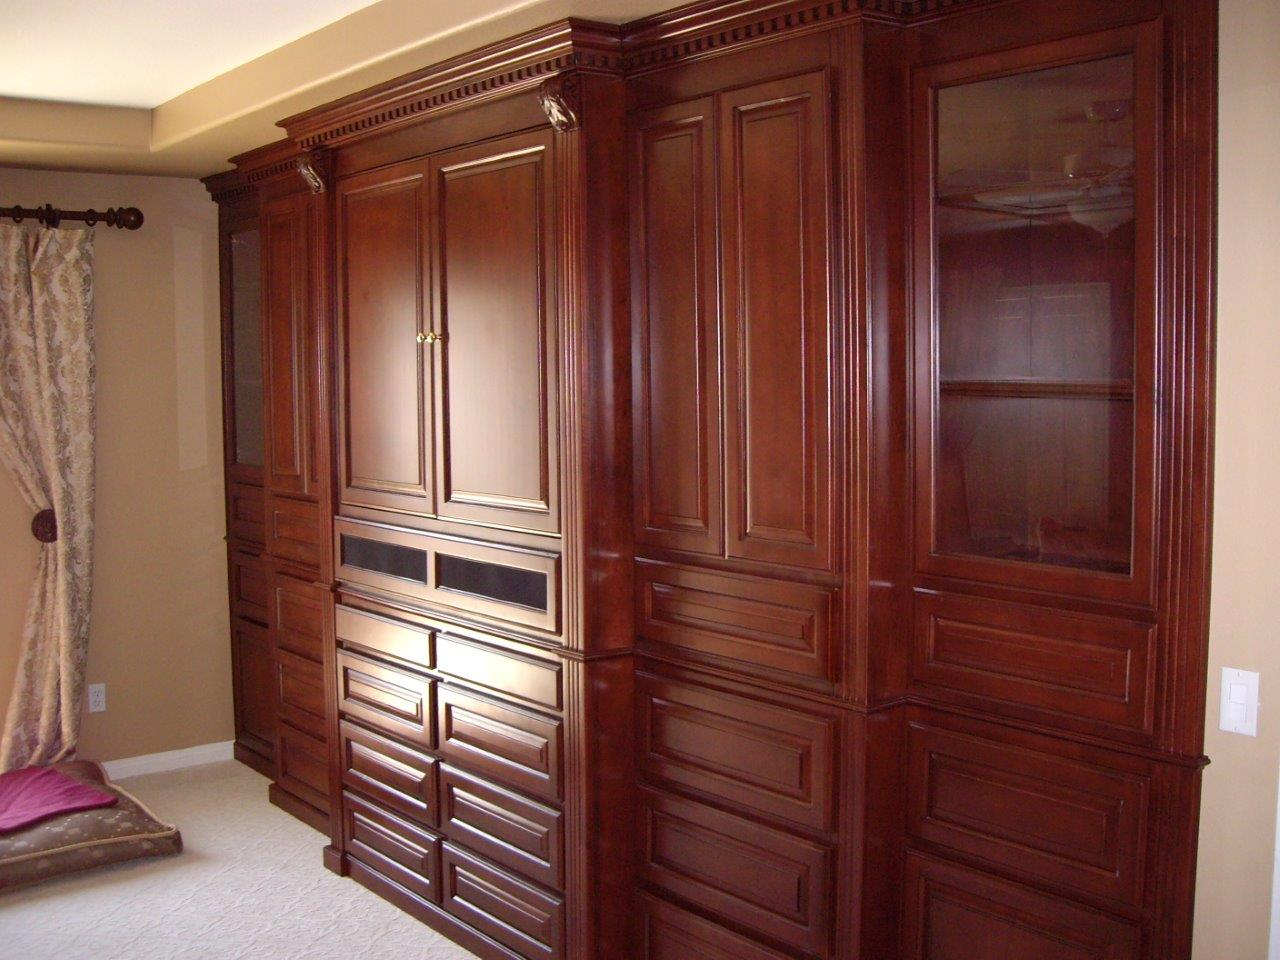 Murphy beds and bedroom cabinets woodwork creations Small wall cabinets for bedroom